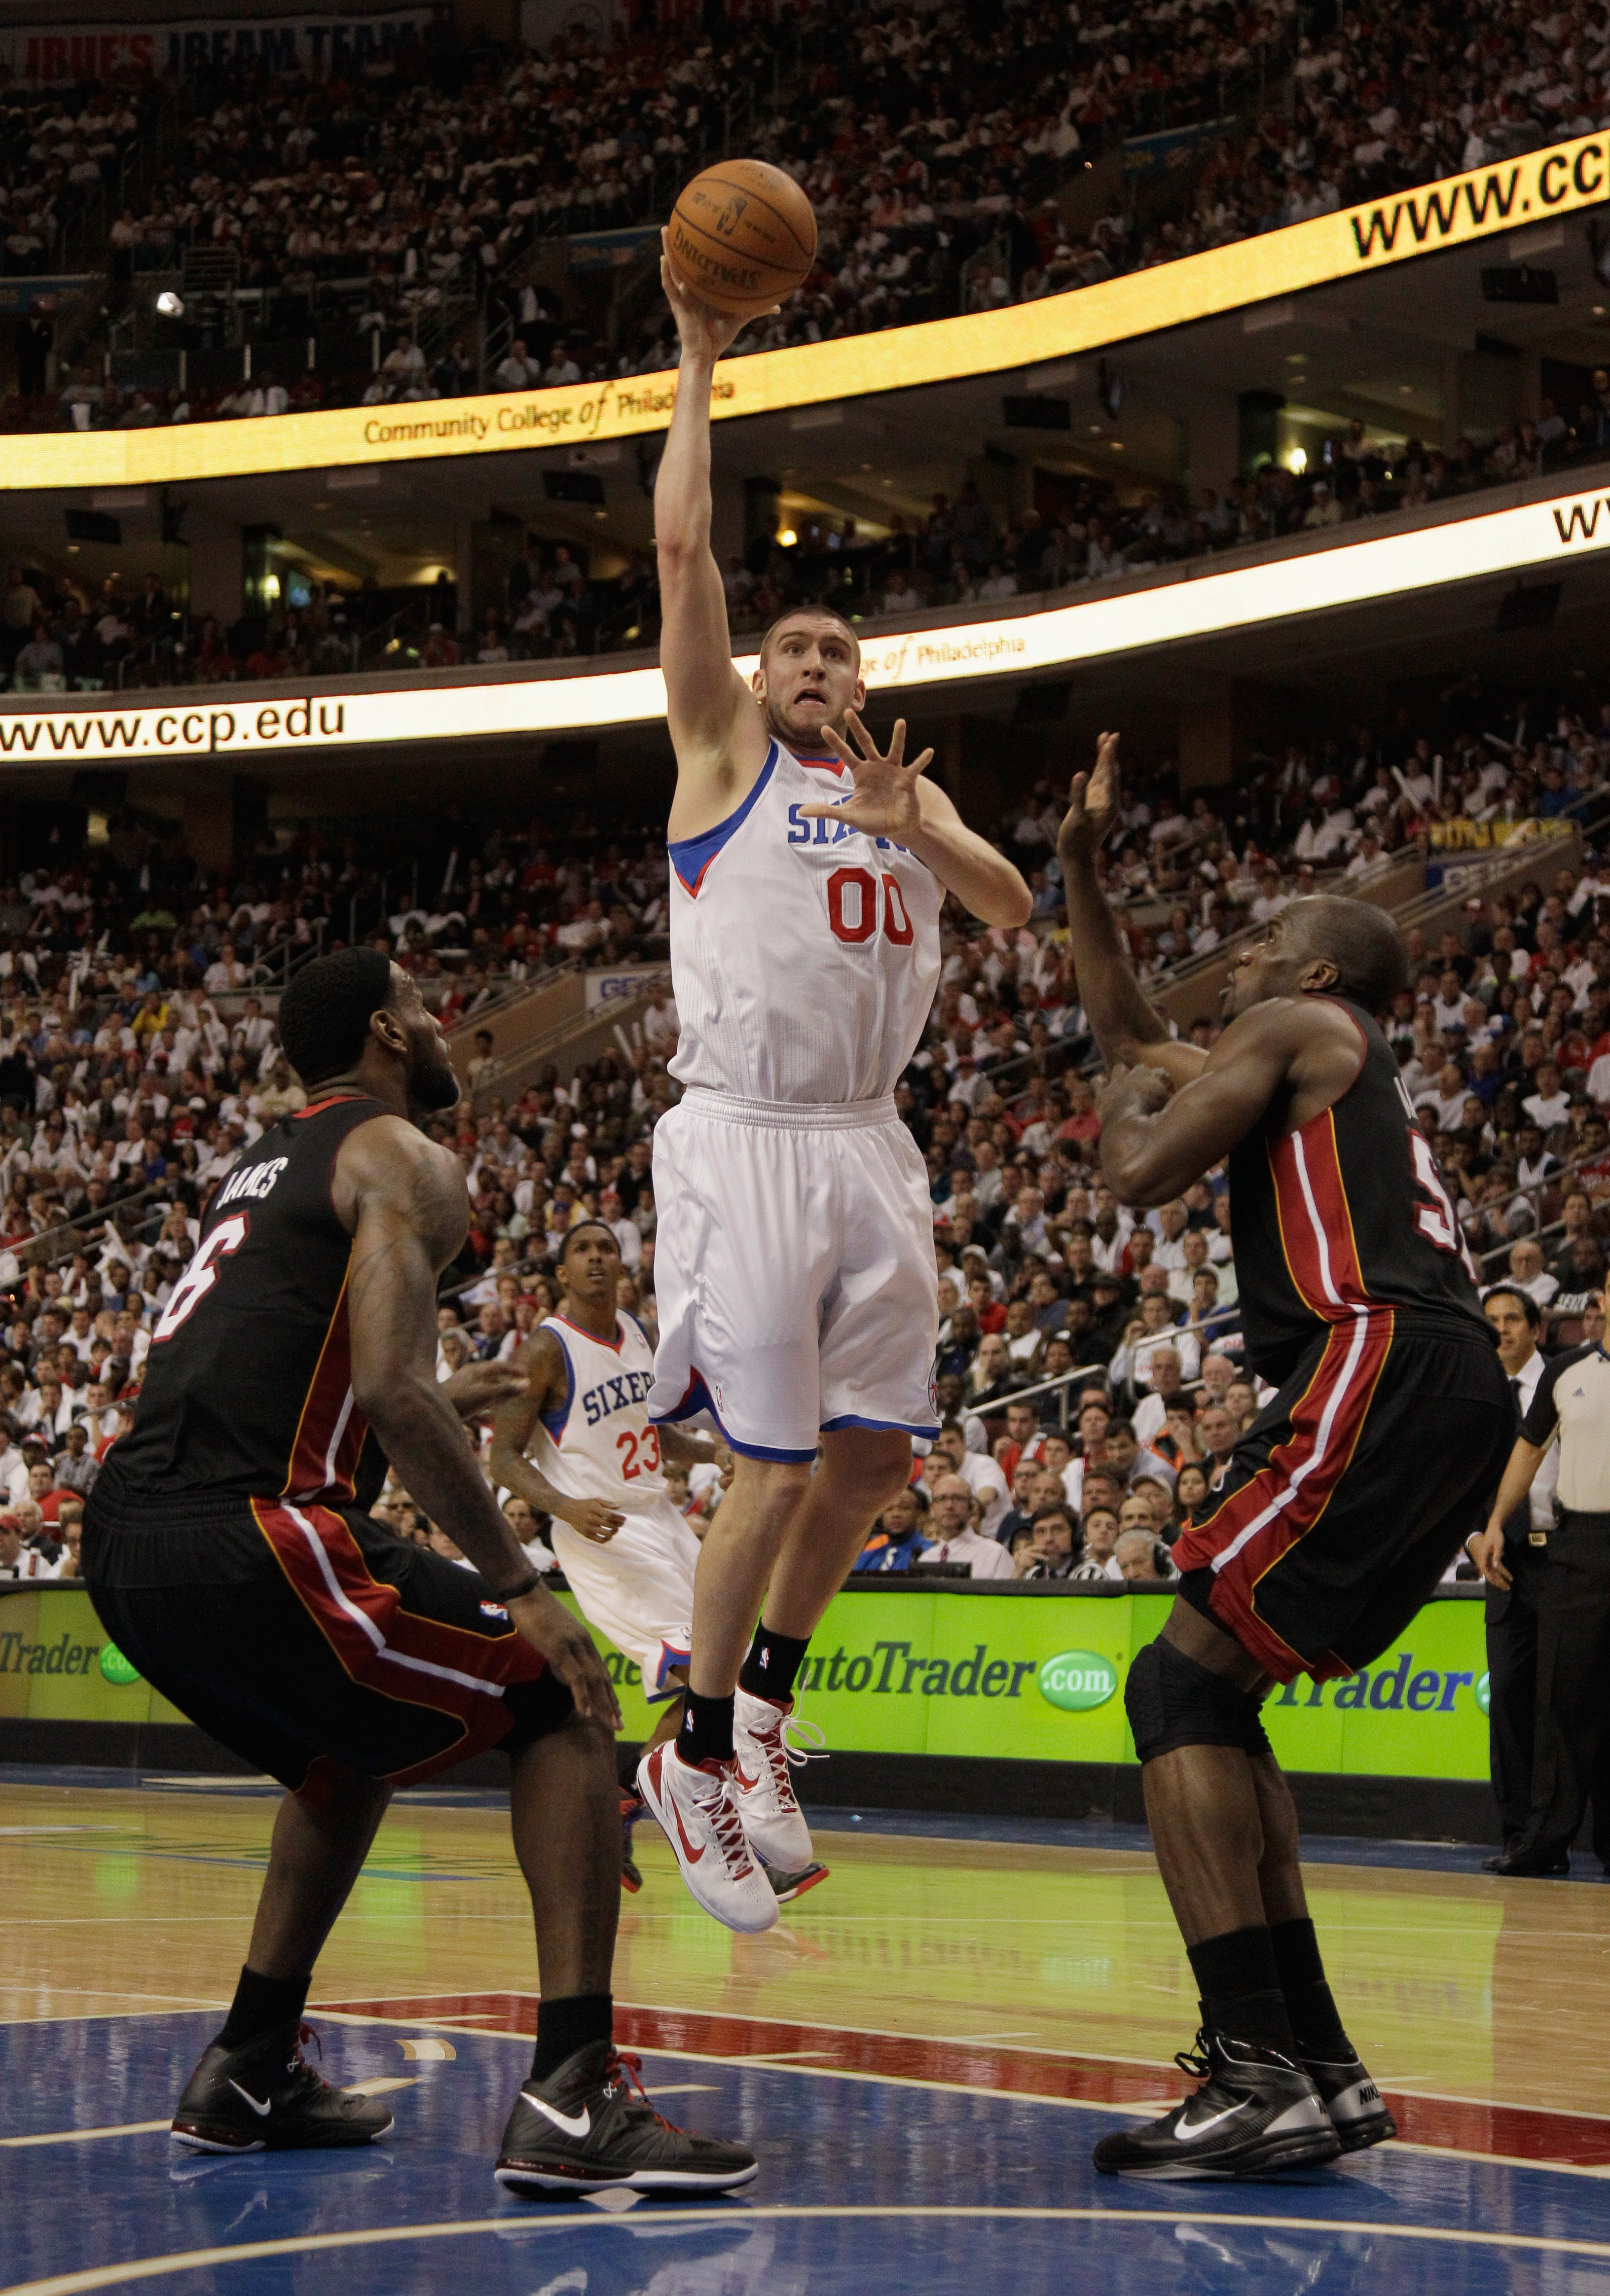 PHILADELPHIA, PA - APRIL 21: Spencer Hawes #00 of the Philadelphia 76ers puts up a shot against the Miami Heat in Game Three of the Eastern Conference Quarterfinals during the 2011 NBA Playoffs at Wells Fargo Center on April 21, 2011 in Philadelphia, Penn